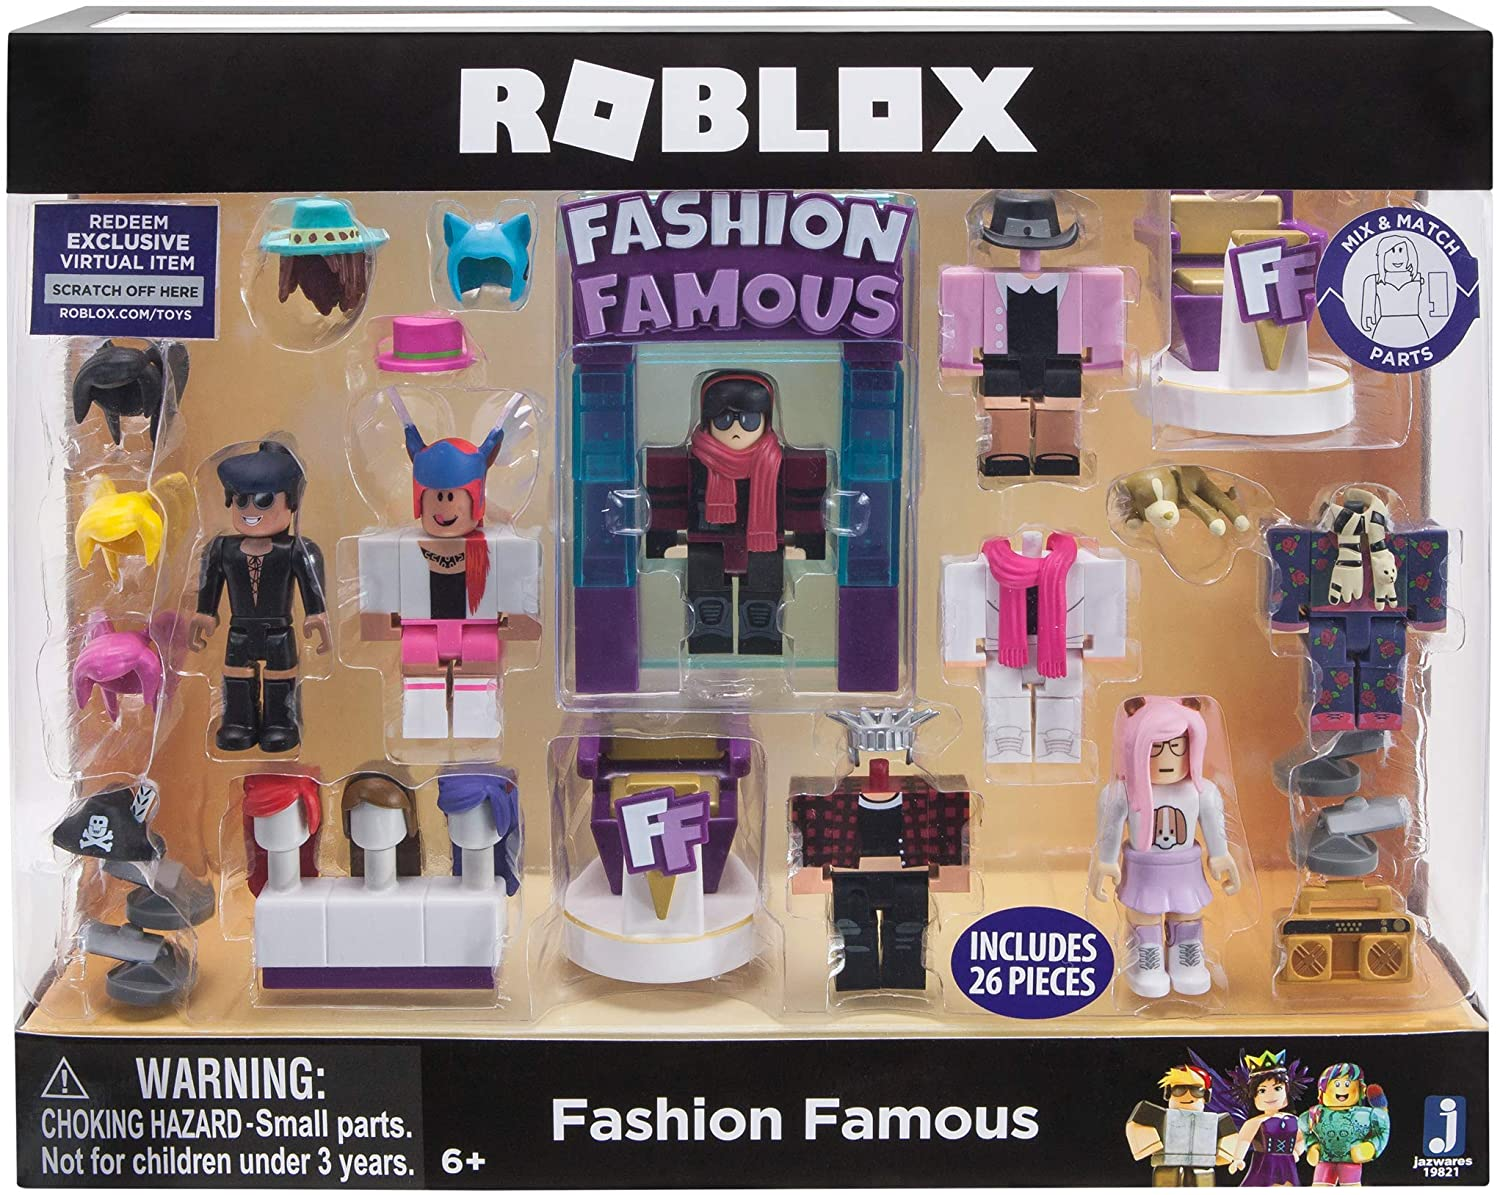 Roblox Celebrity Collection - Fashion Famous Playset [Includes Multi-color